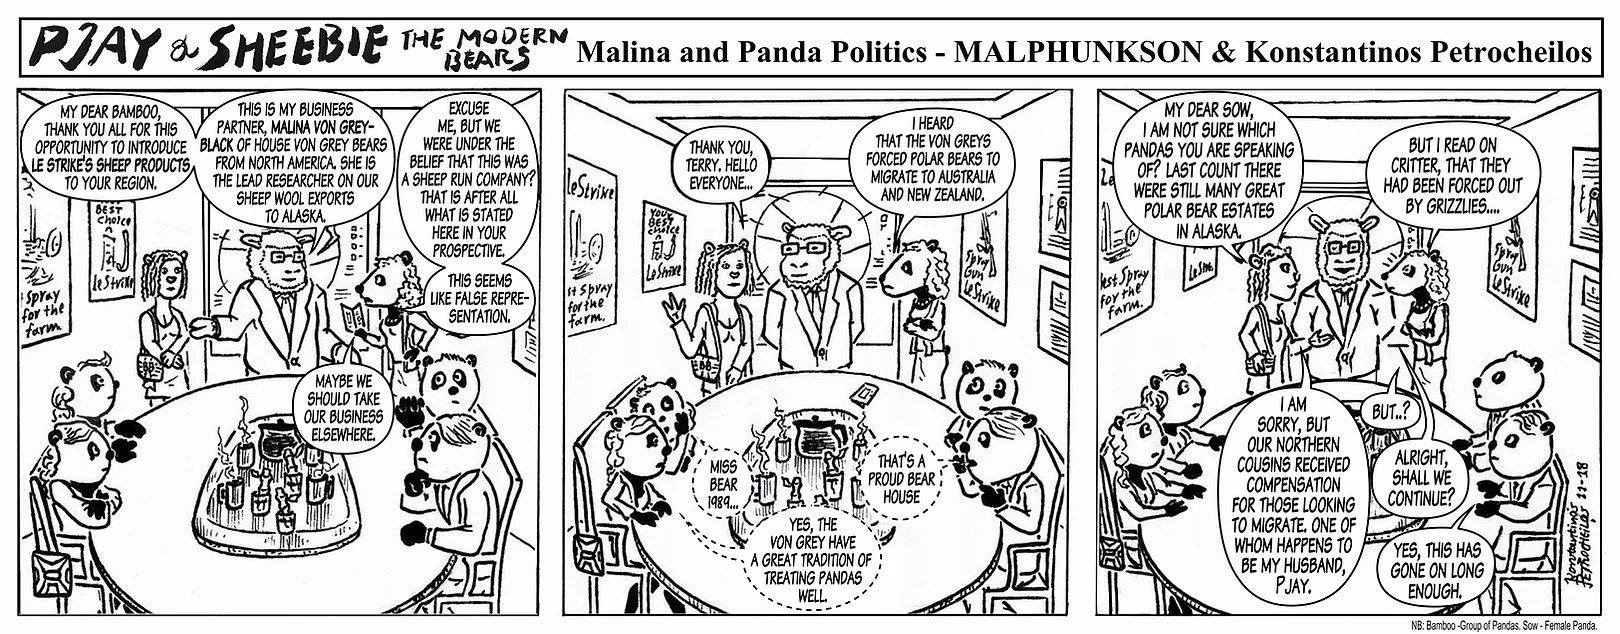 Malina and Panda Politics